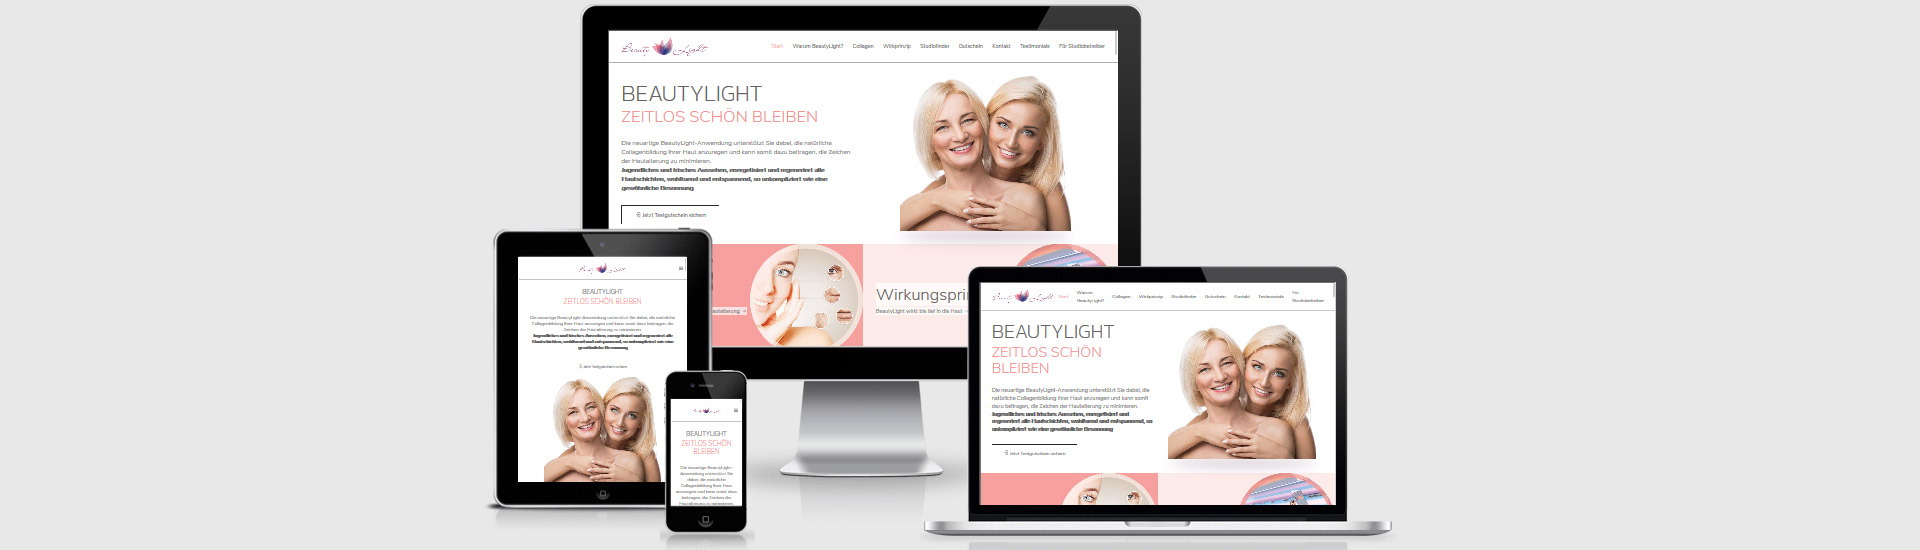 webdesign heusenstamm beautylight header 01